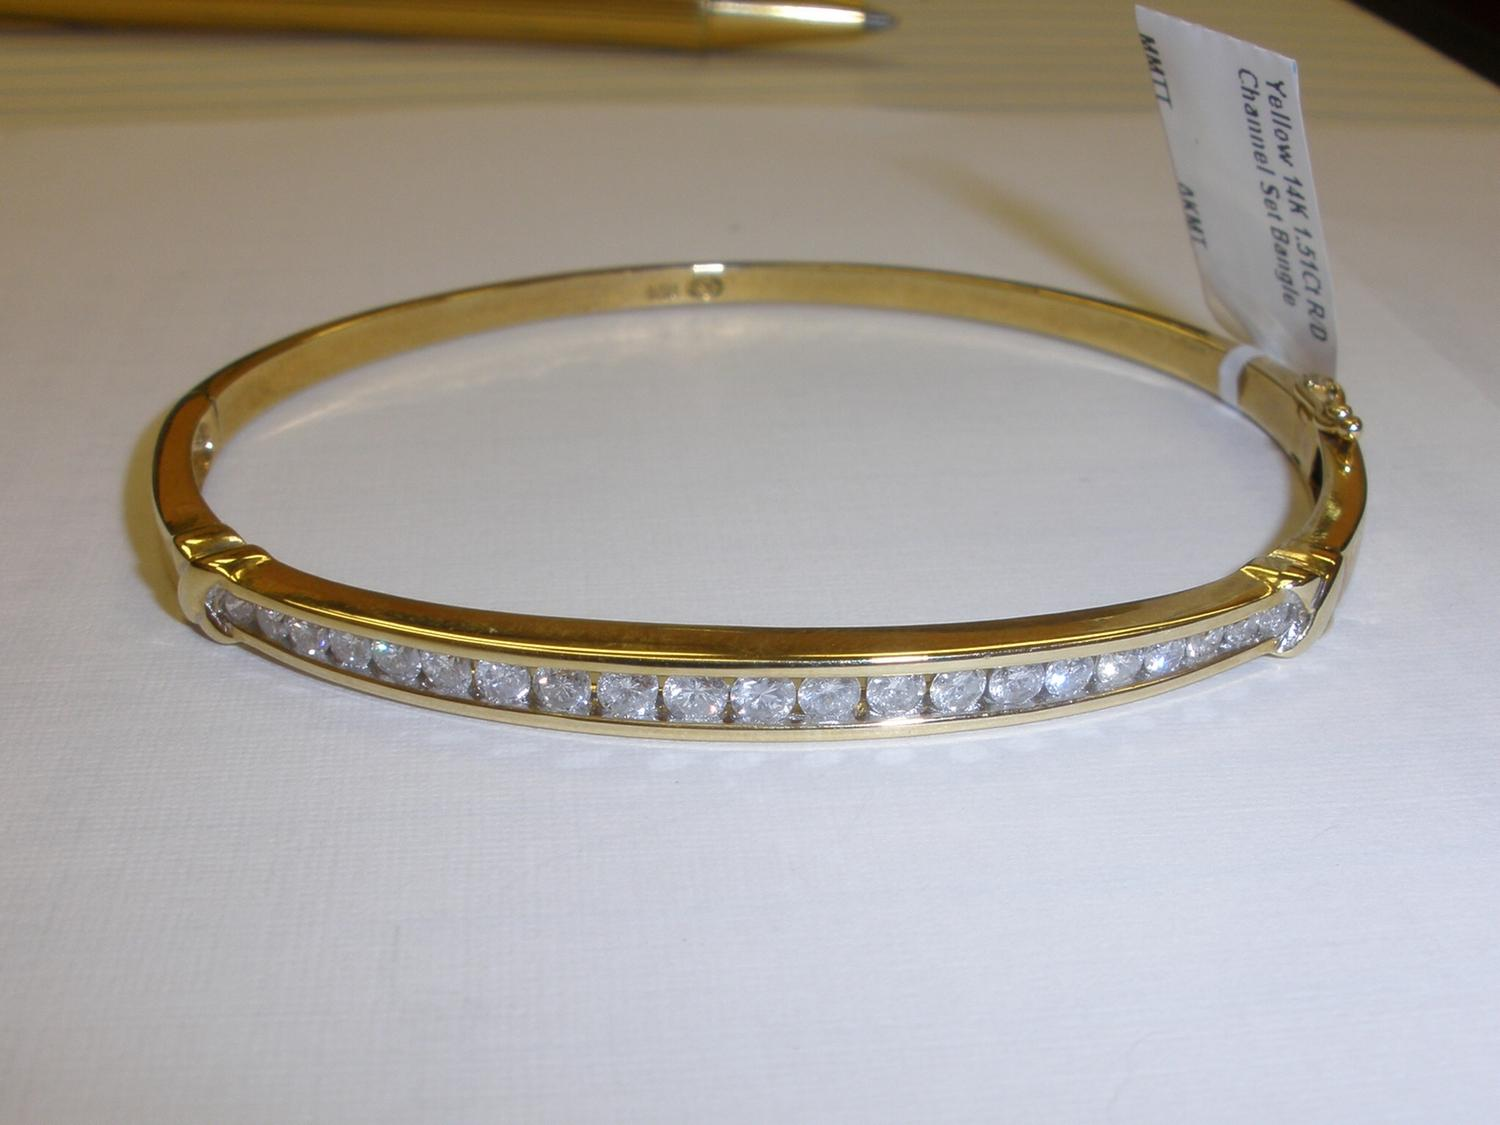 bangle diamonds bangles yellow ctw estate diamond appx bracelet gold product